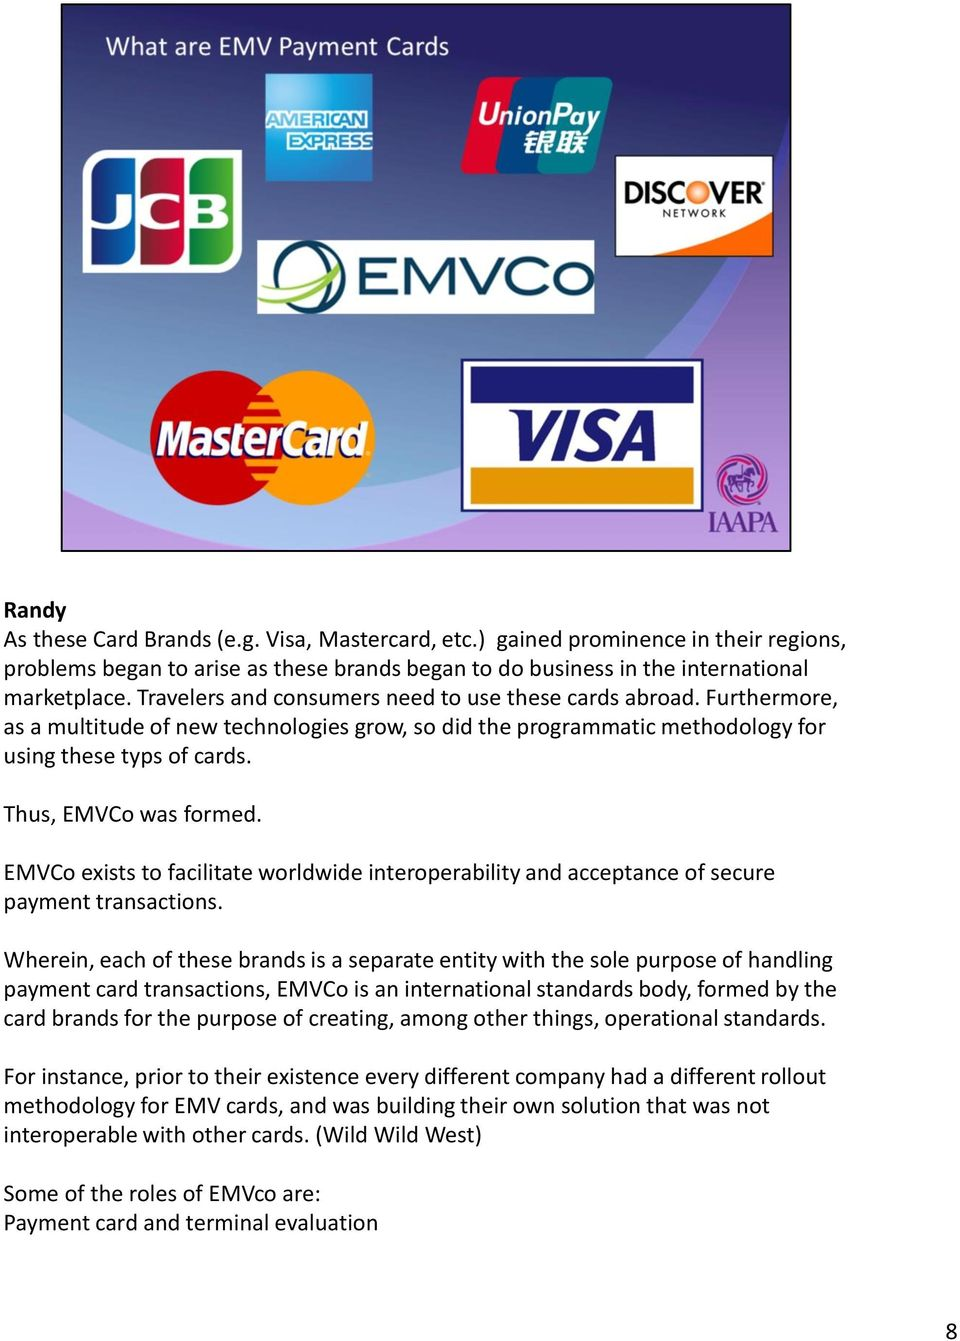 EMVCo exists to facilitate worldwide interoperability and acceptance of secure payment transactions.